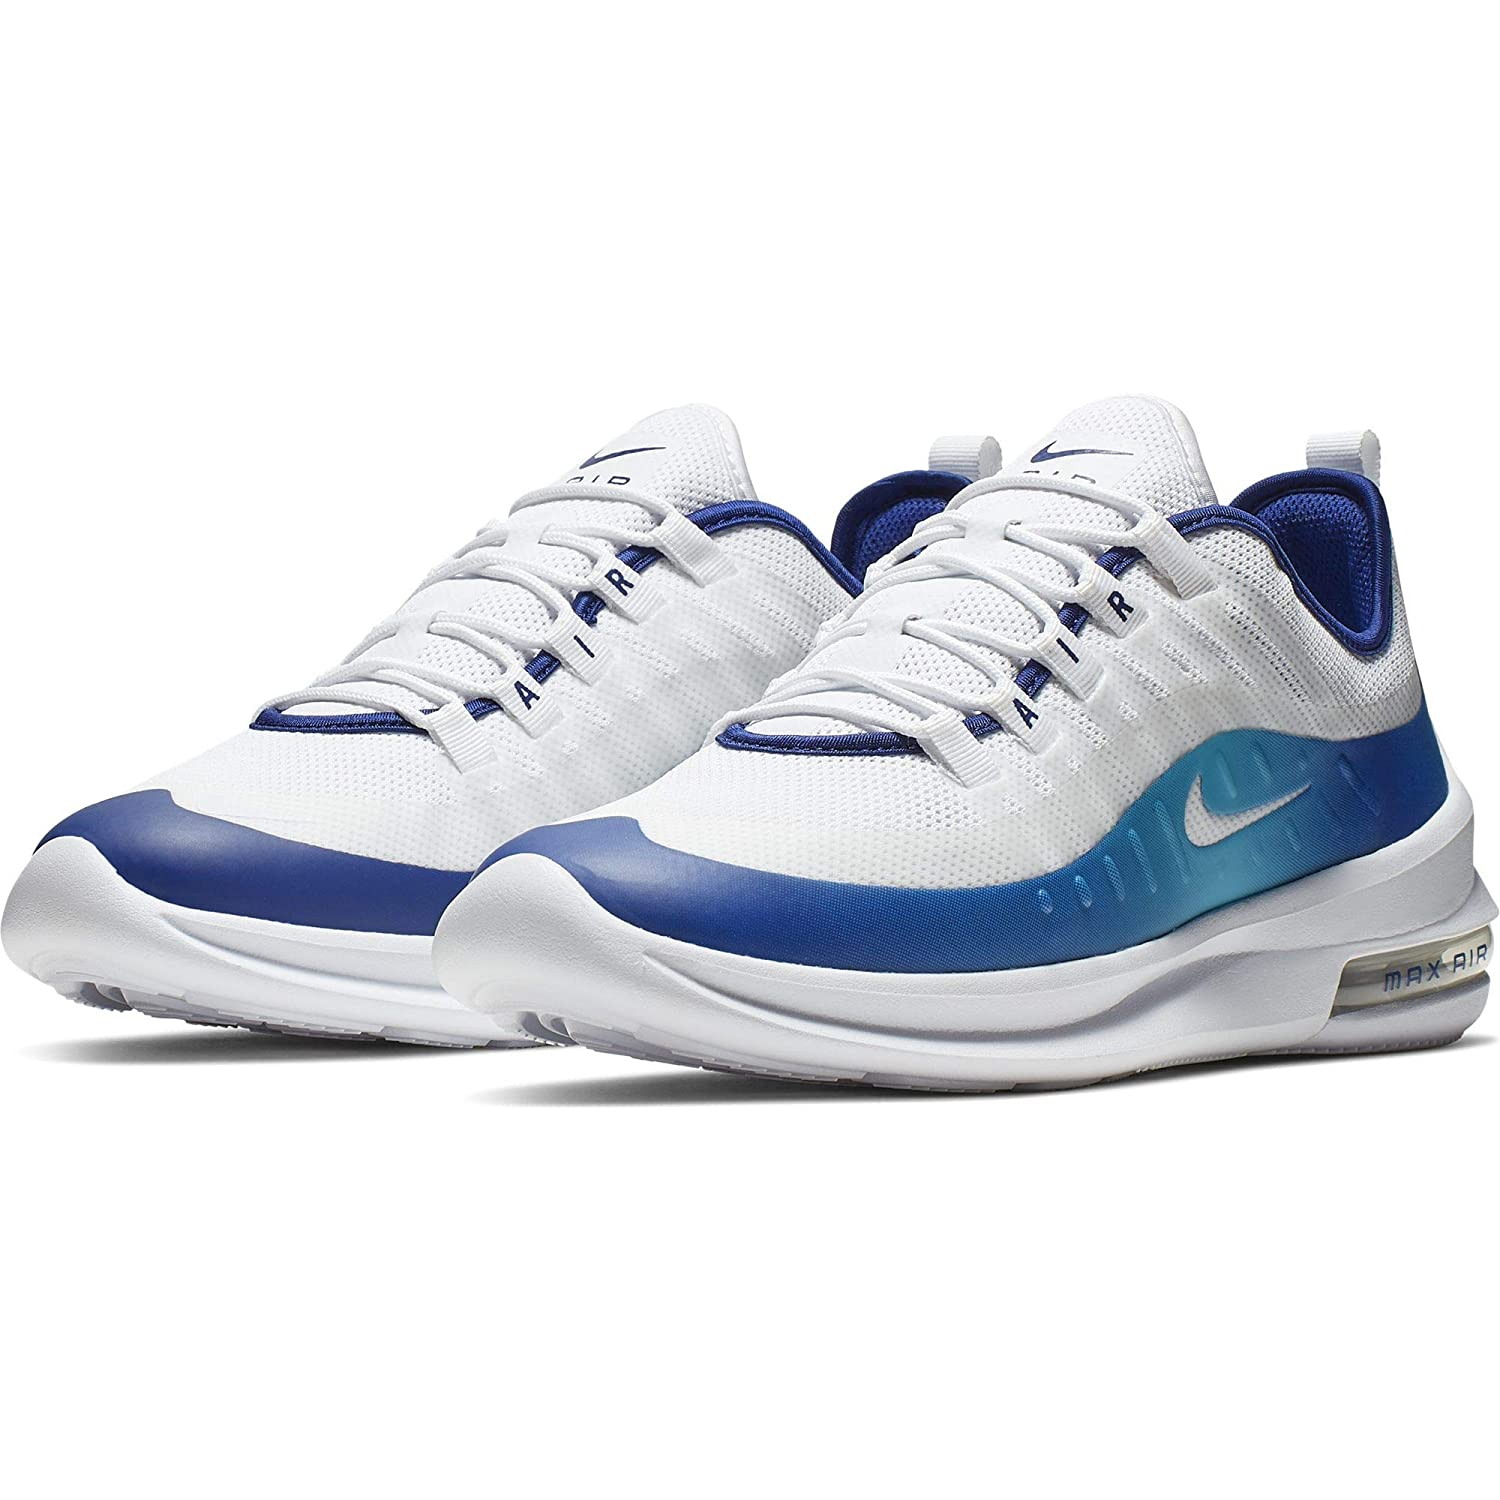 caf6fec9c8 Amazon.com: Nike Men's Air Max Axis Premium: Shoes